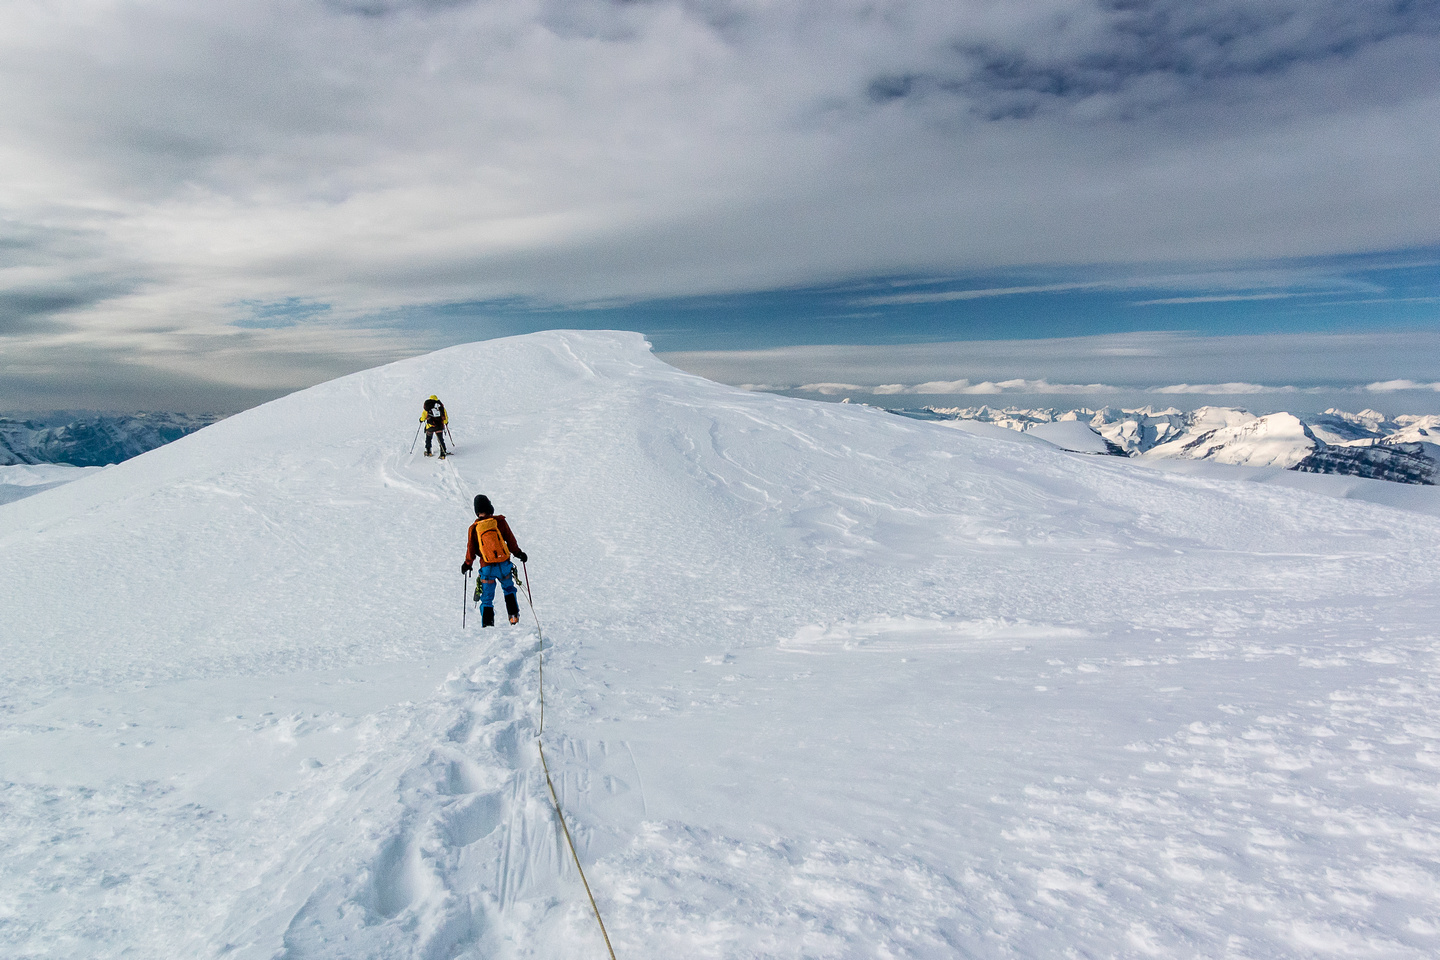 Approaching the summit of Alberta's highest peak.